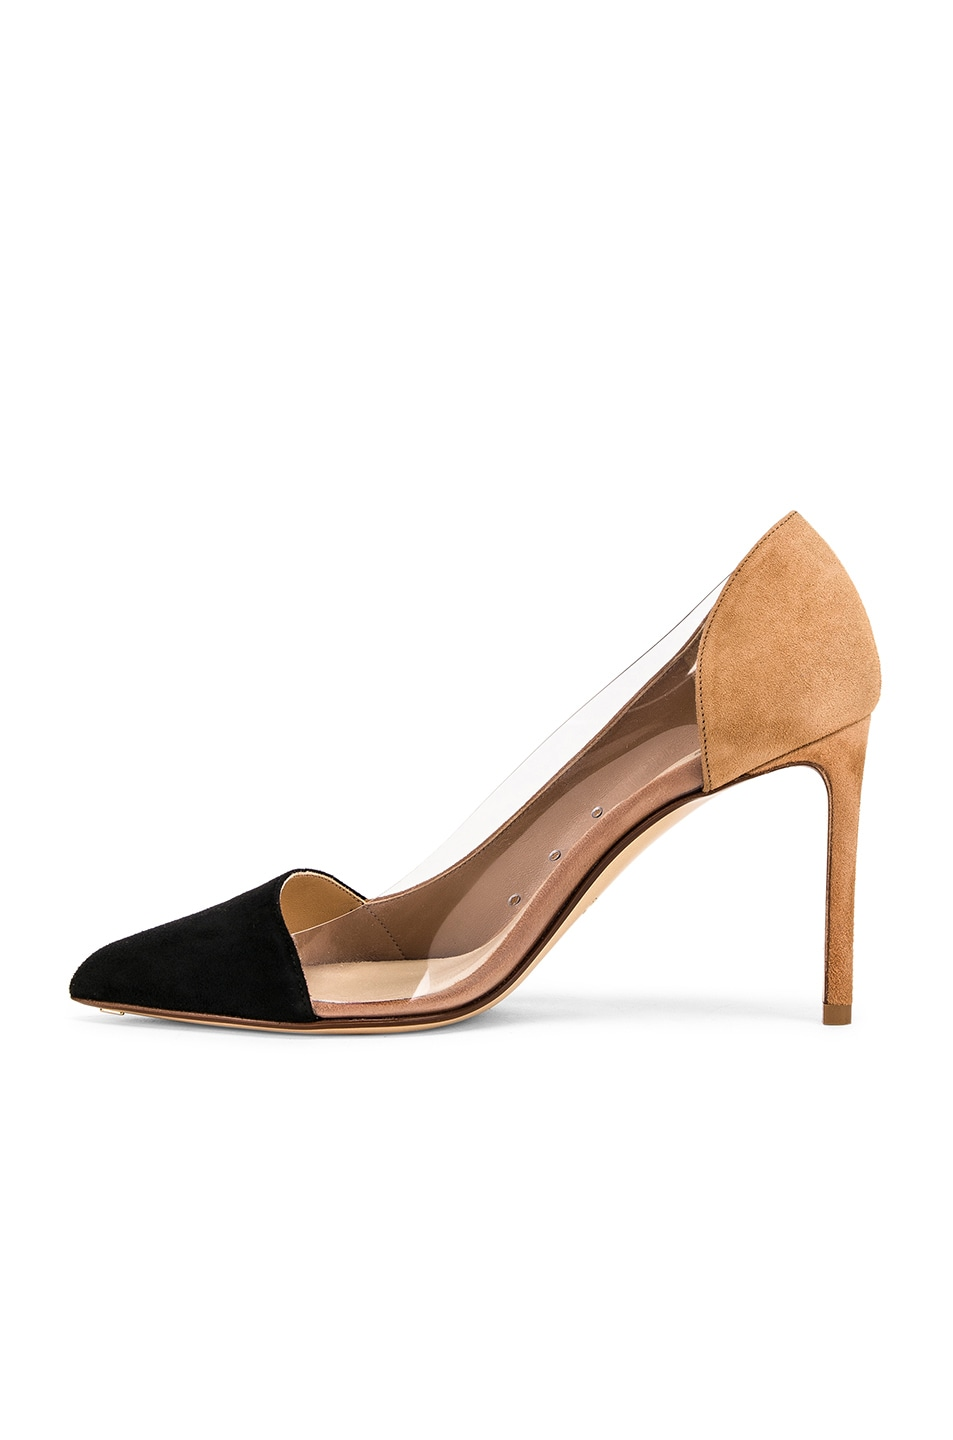 Image 5 of FRANCESCO RUSSO Two Tone PVC Heels in Black & Camel